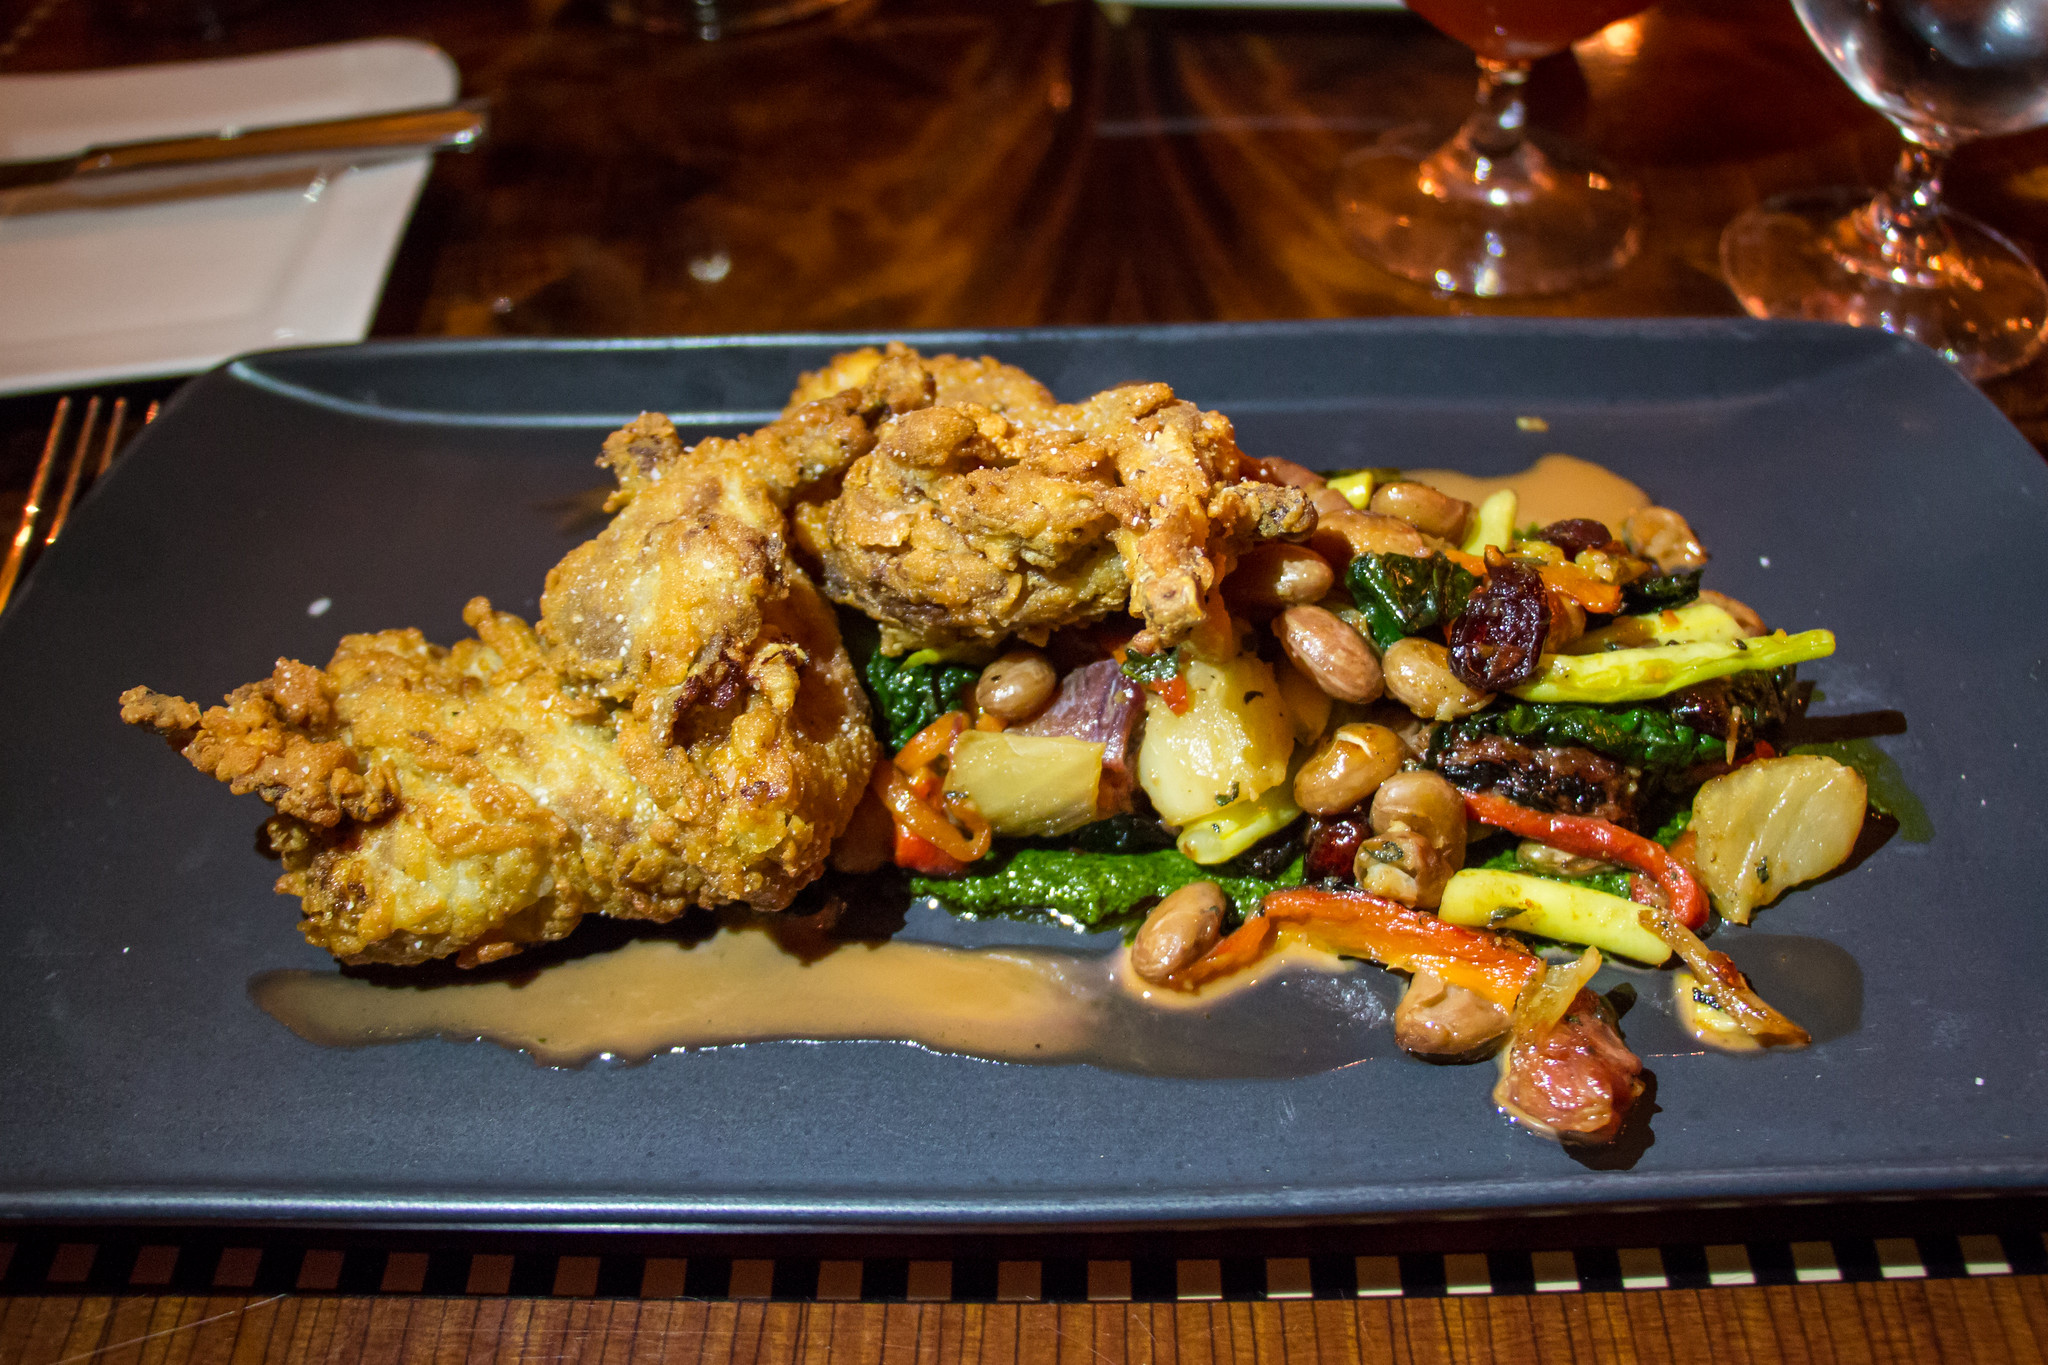 Anthony Bourdain Atlanta - Buttermilk Fried Quail - photo by HarshLight under CC BY 2.0